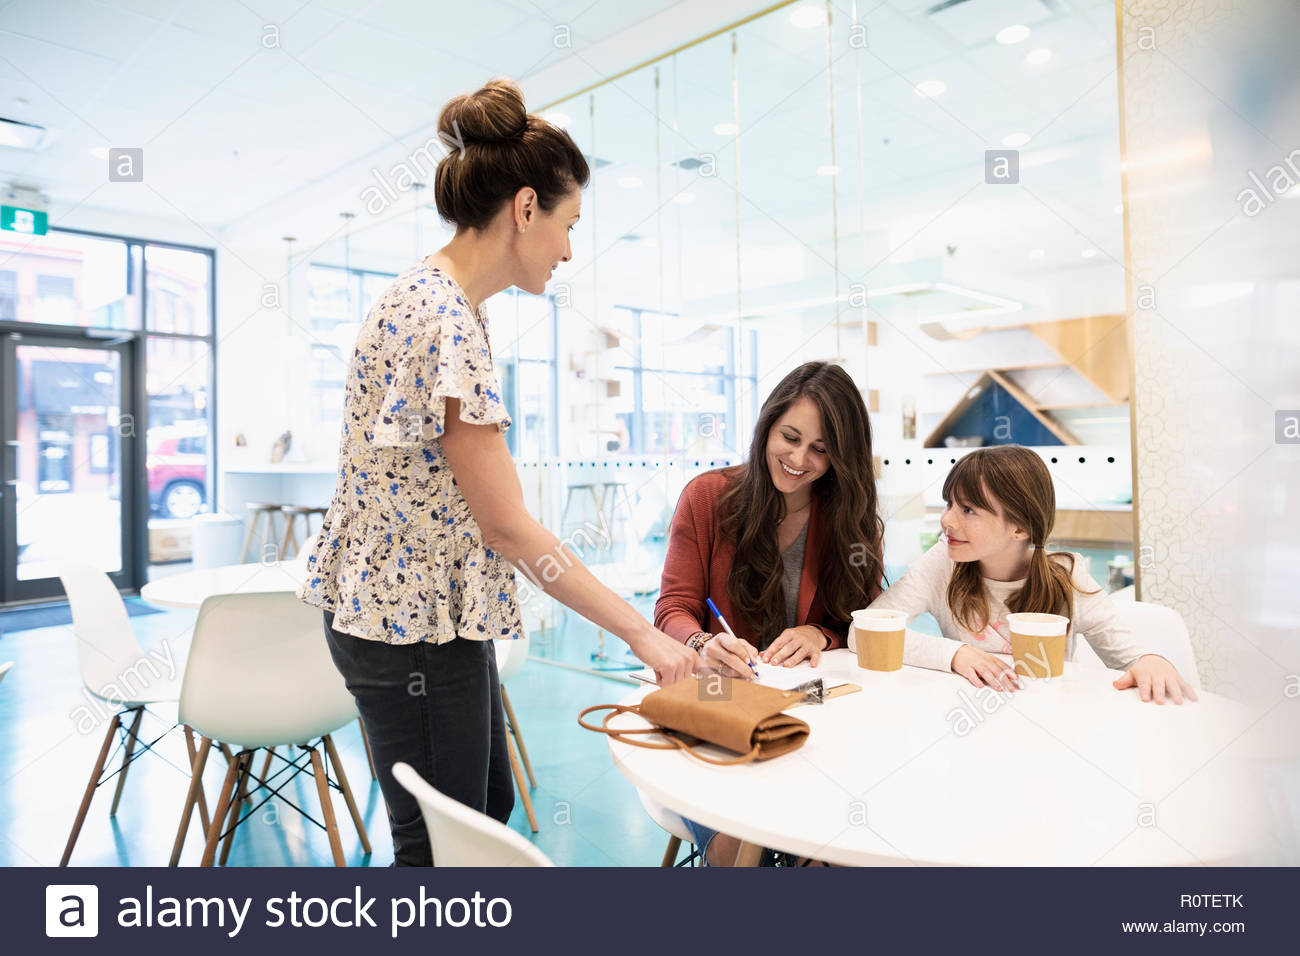 Mother and daughter drinking coffee and filling out adoption application in cat cafe - Stock Image